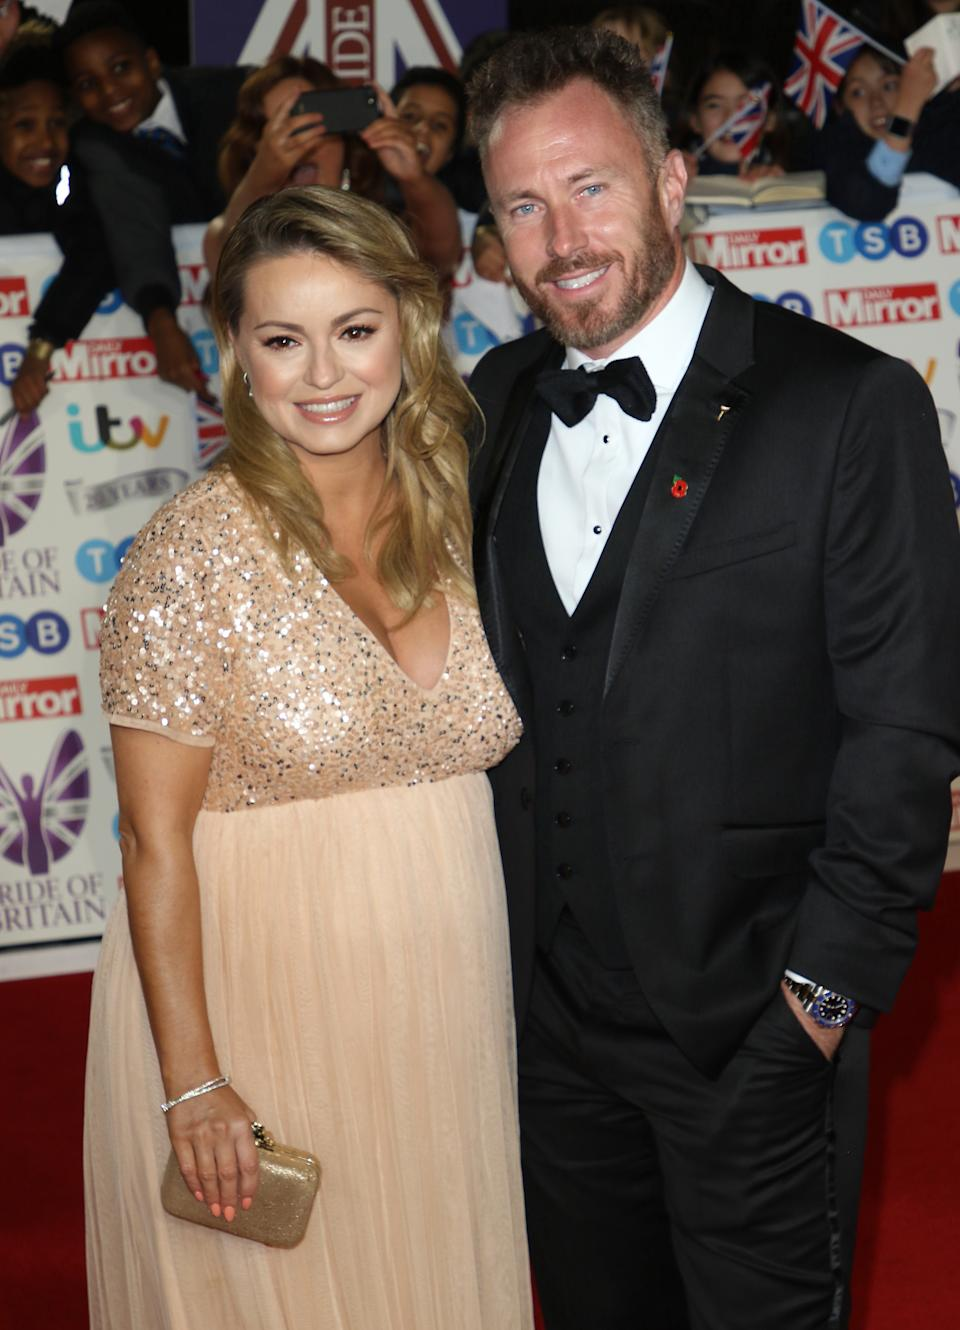 LONDON, -, UNITED KINGDOM - 2019/10/28: Ola Jordan and James Jordan on the red carpet at The Daily Mirror Pride of Britain Awards, in partnership with TSB, at the Grosvenor House Hotel, Park Lane. (Photo by Keith Mayhew/SOPA Images/LightRocket via Getty Images)